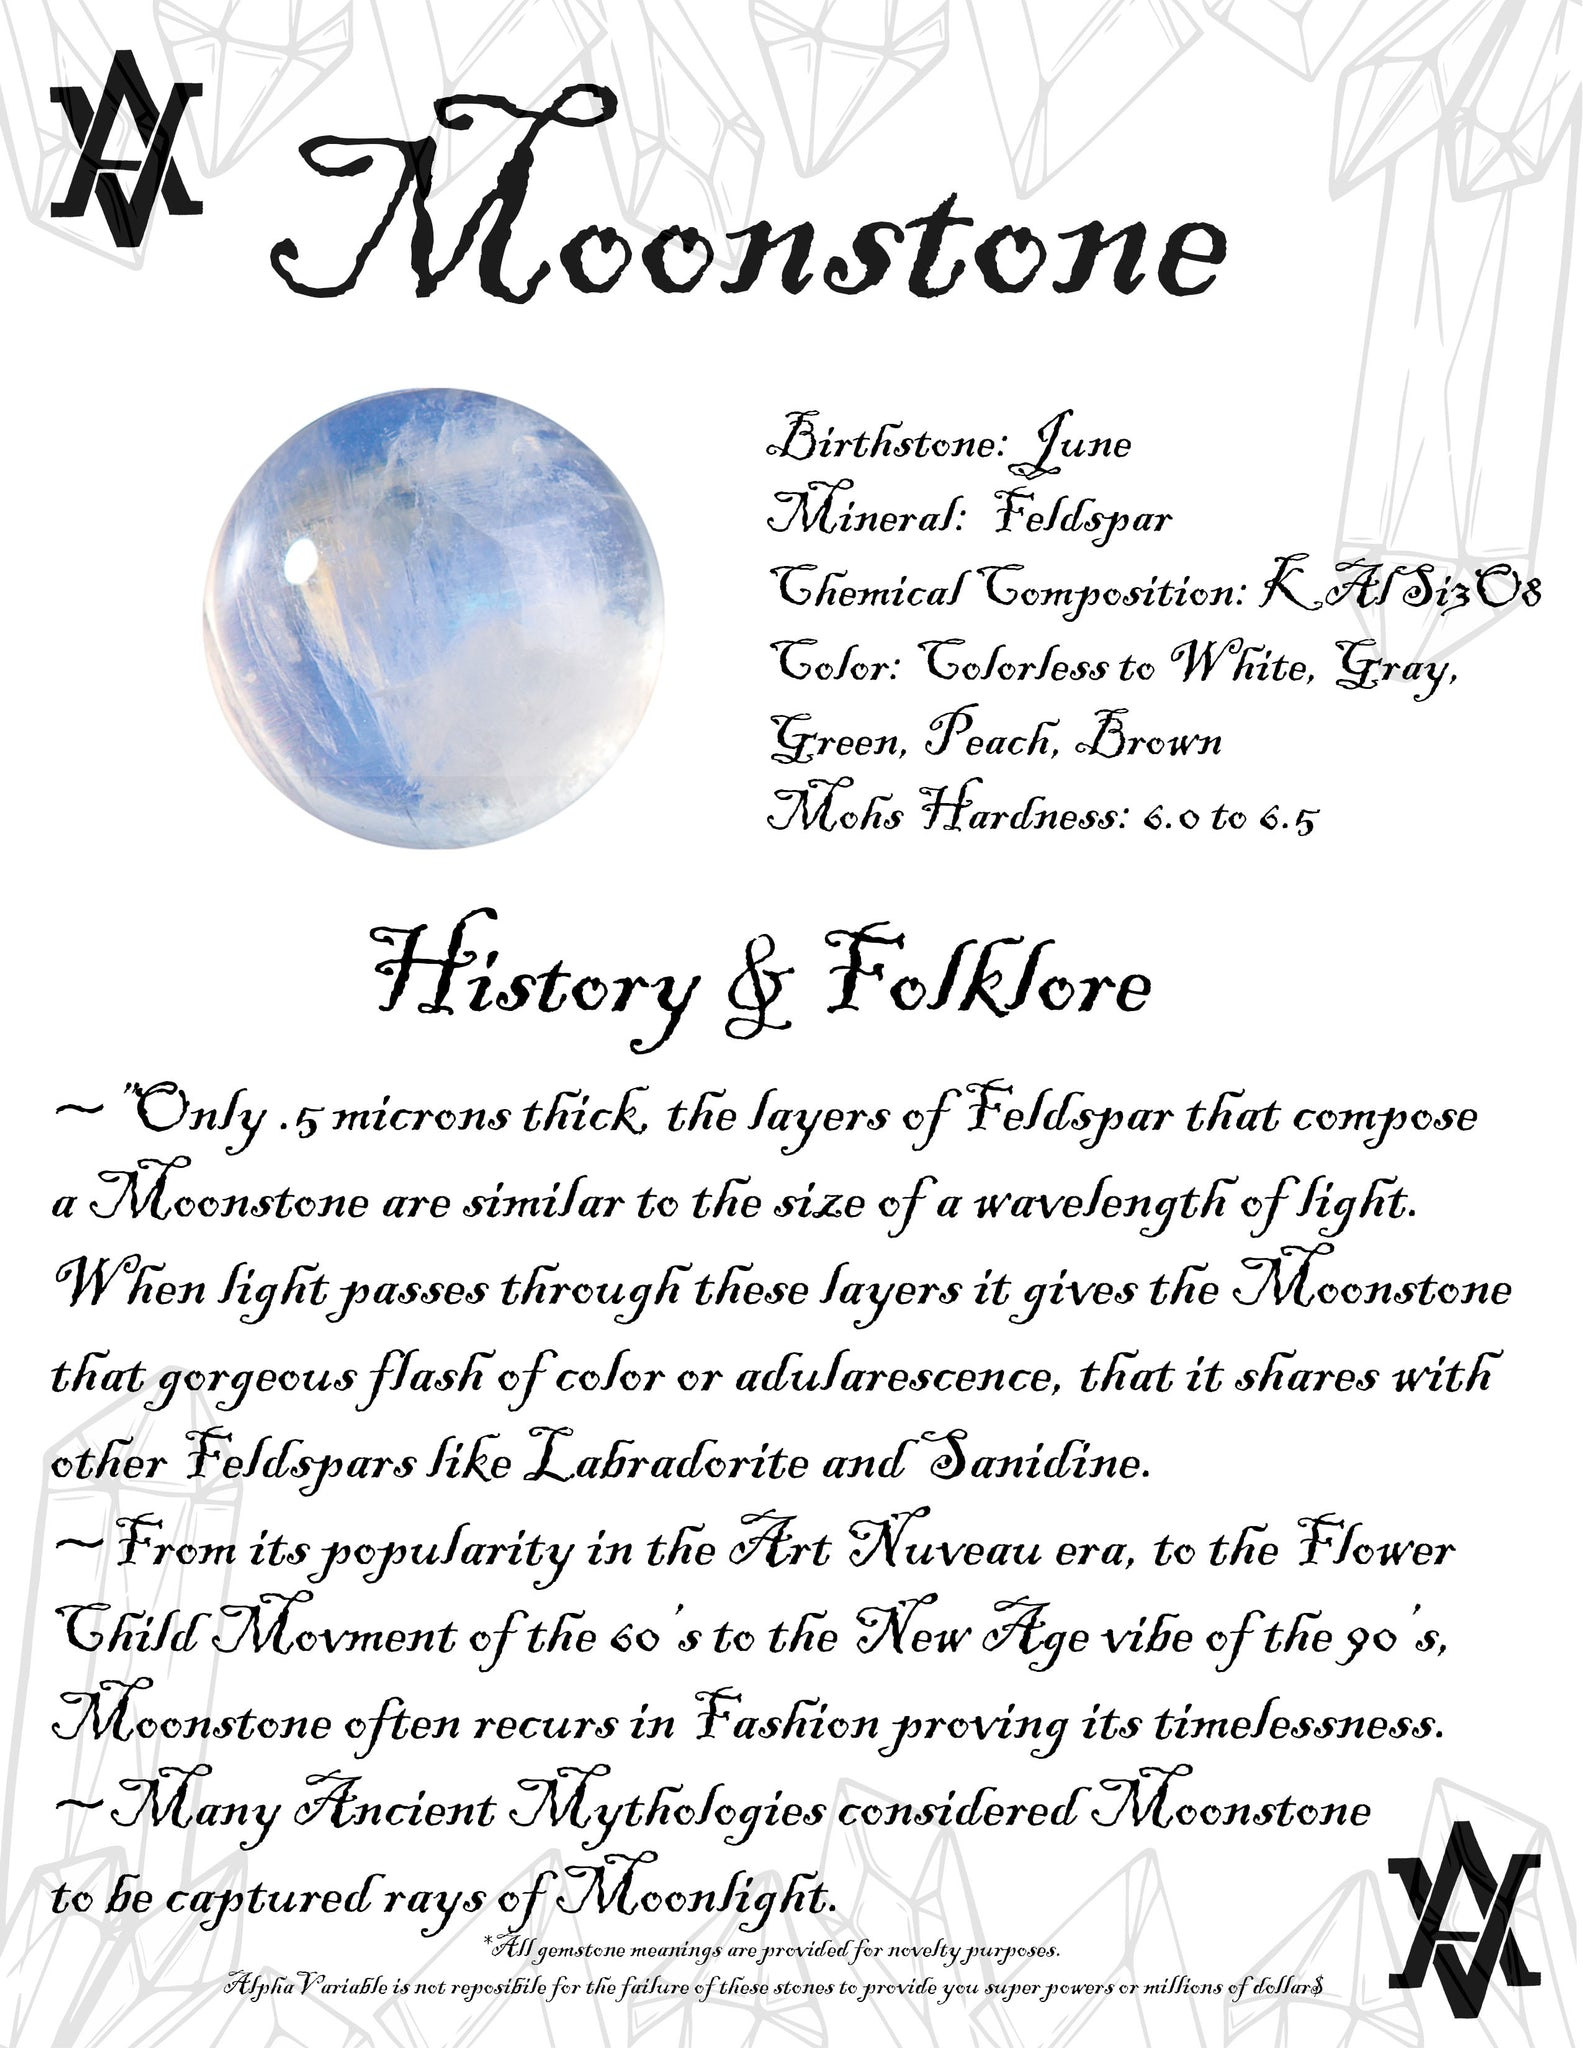 Moonstone Meaning History and Folklore